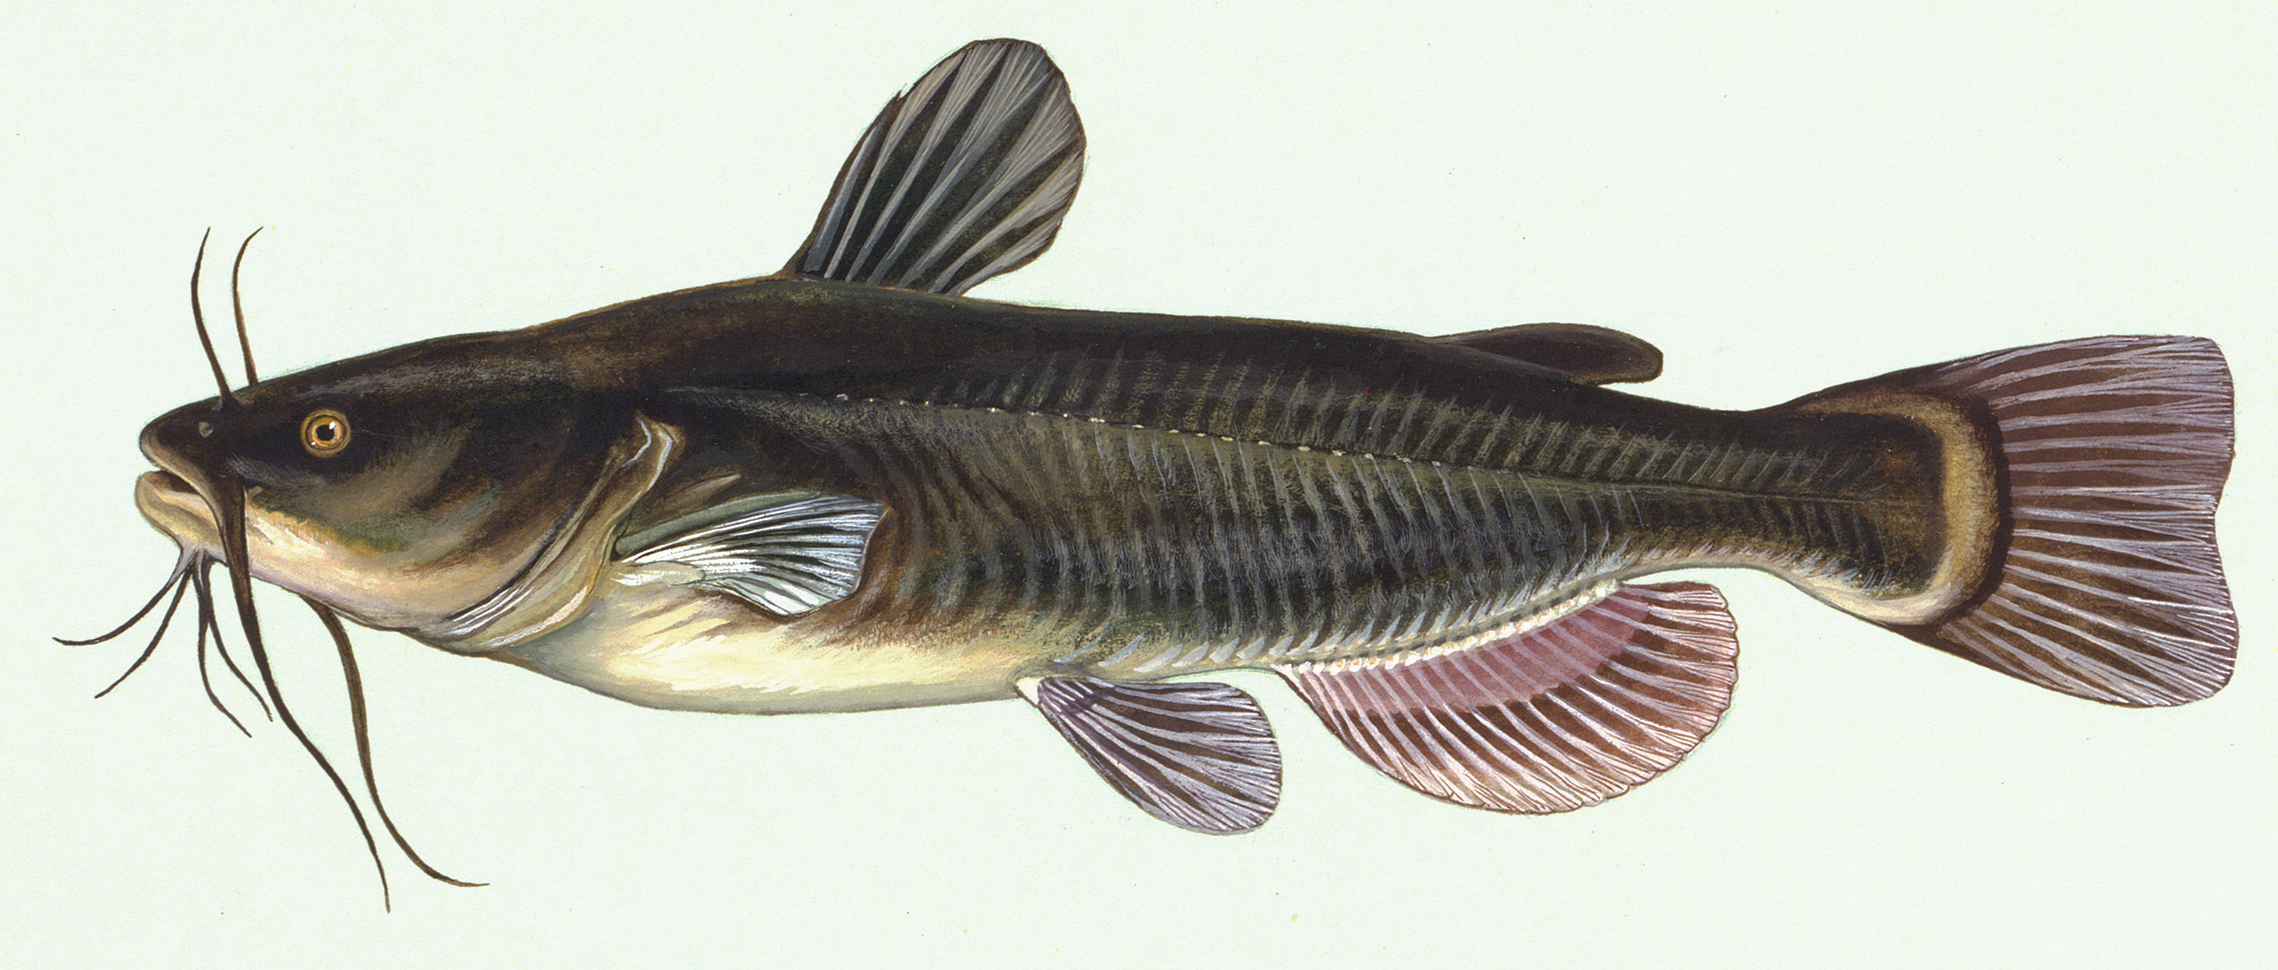 http://upload.wikimedia.org/wikipedia/commons/9/94/Ameiurus_melas_by_Duane_Raver.png?uselang=fr